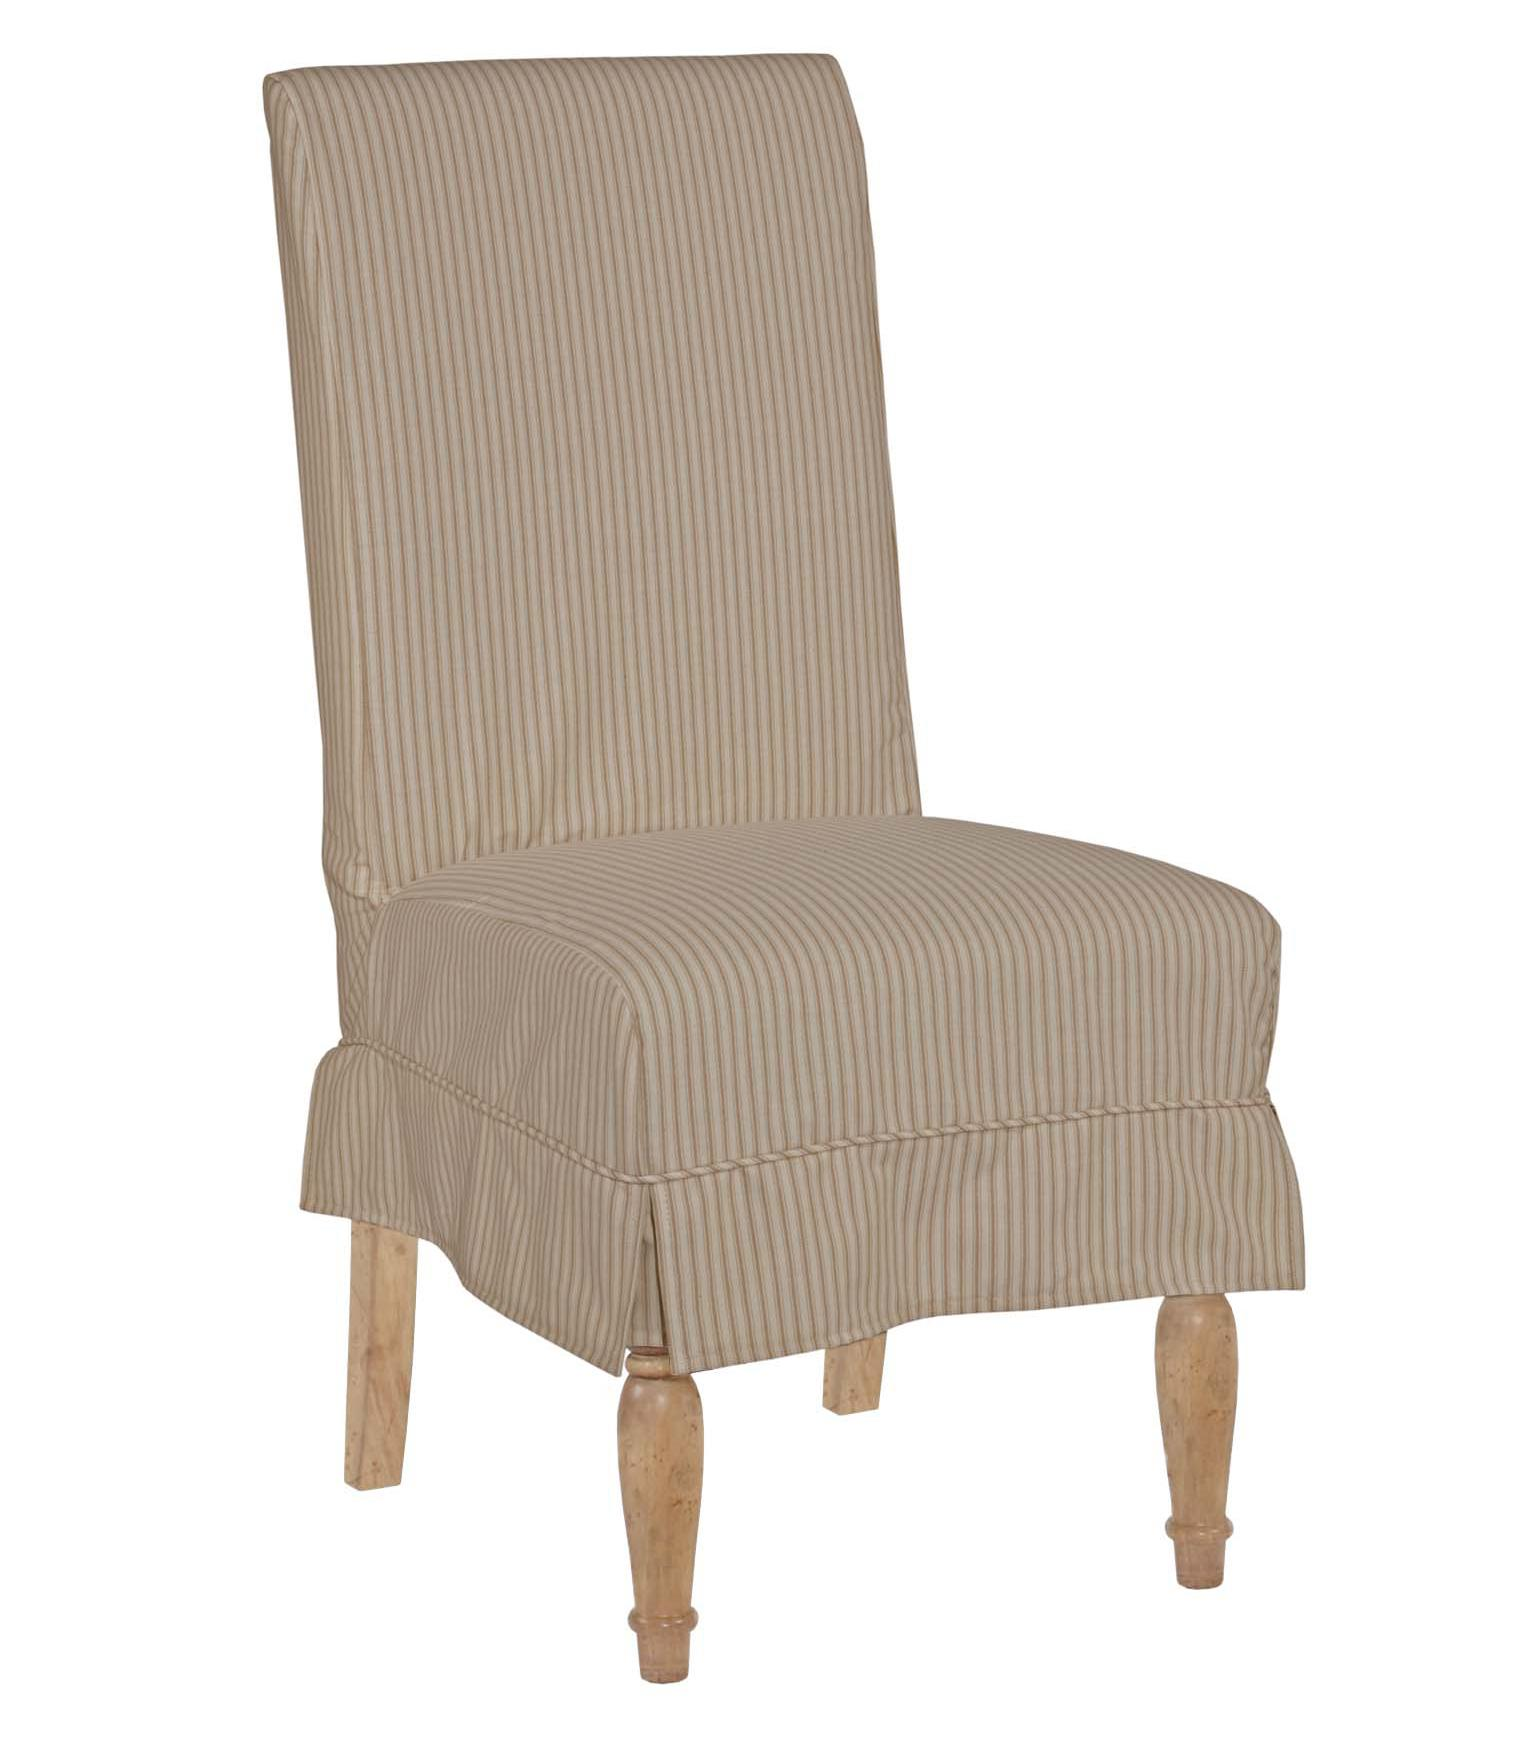 Kincaid Furniture Homecoming Slipcover Chair - Item Number: 33-065